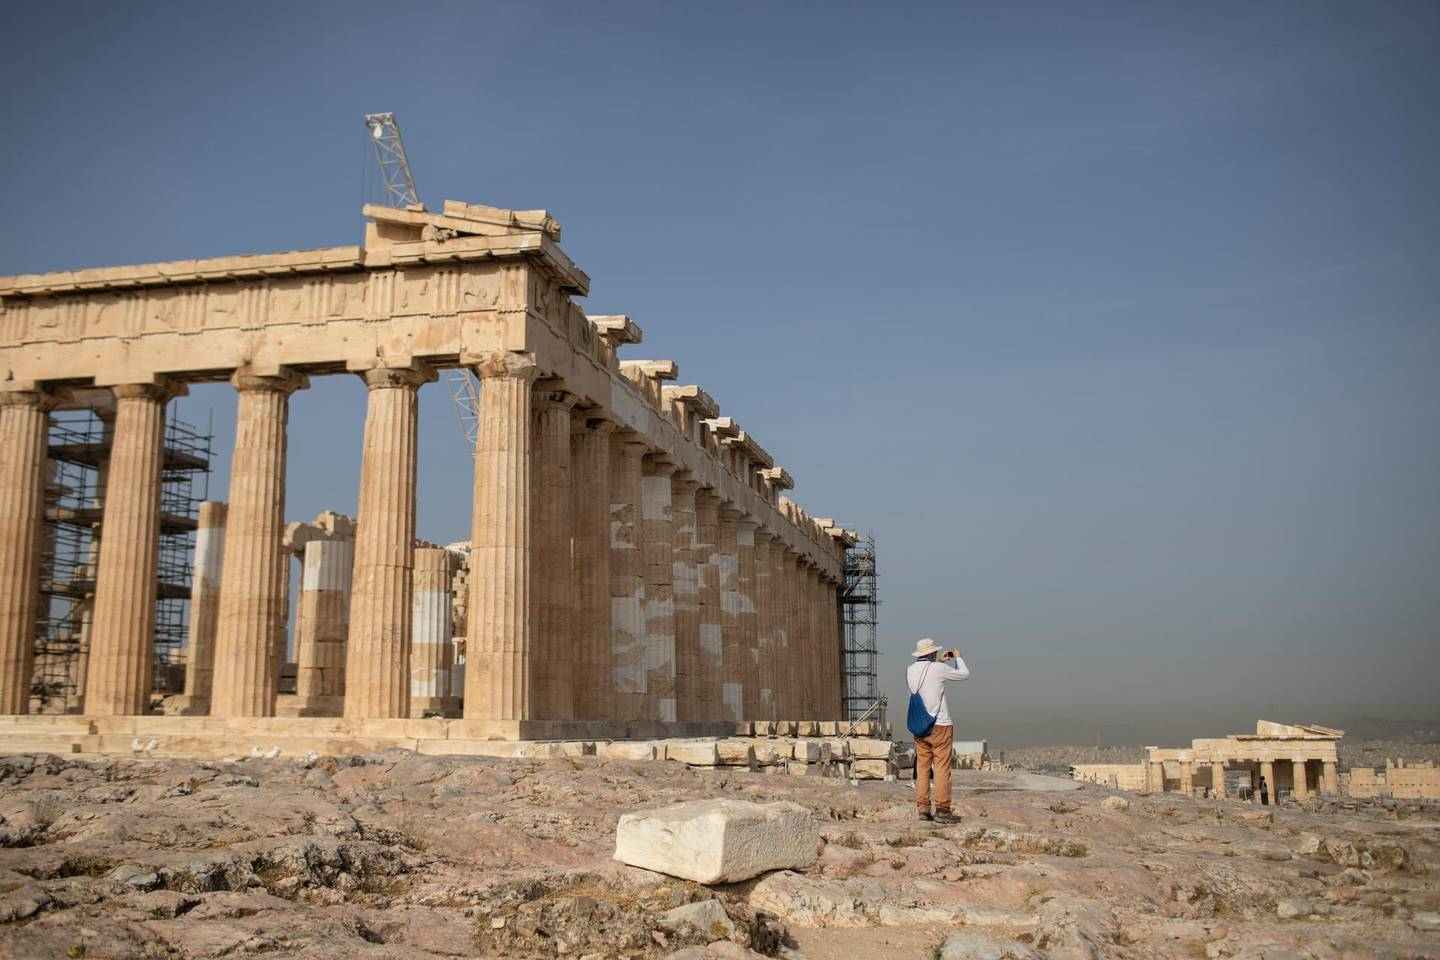 A man takes picture next the ancient Parthenon temple at the Acropolis hill of Athens, on Monday, May 18, 2020. Greece reopened the Acropolis in Athens and other ancient sites Monday, along with high schools, shopping malls, and mainland travel in the latest round of easing pandemic restrictions imposed in late March. (AP Photo/Petros Giannakouris)